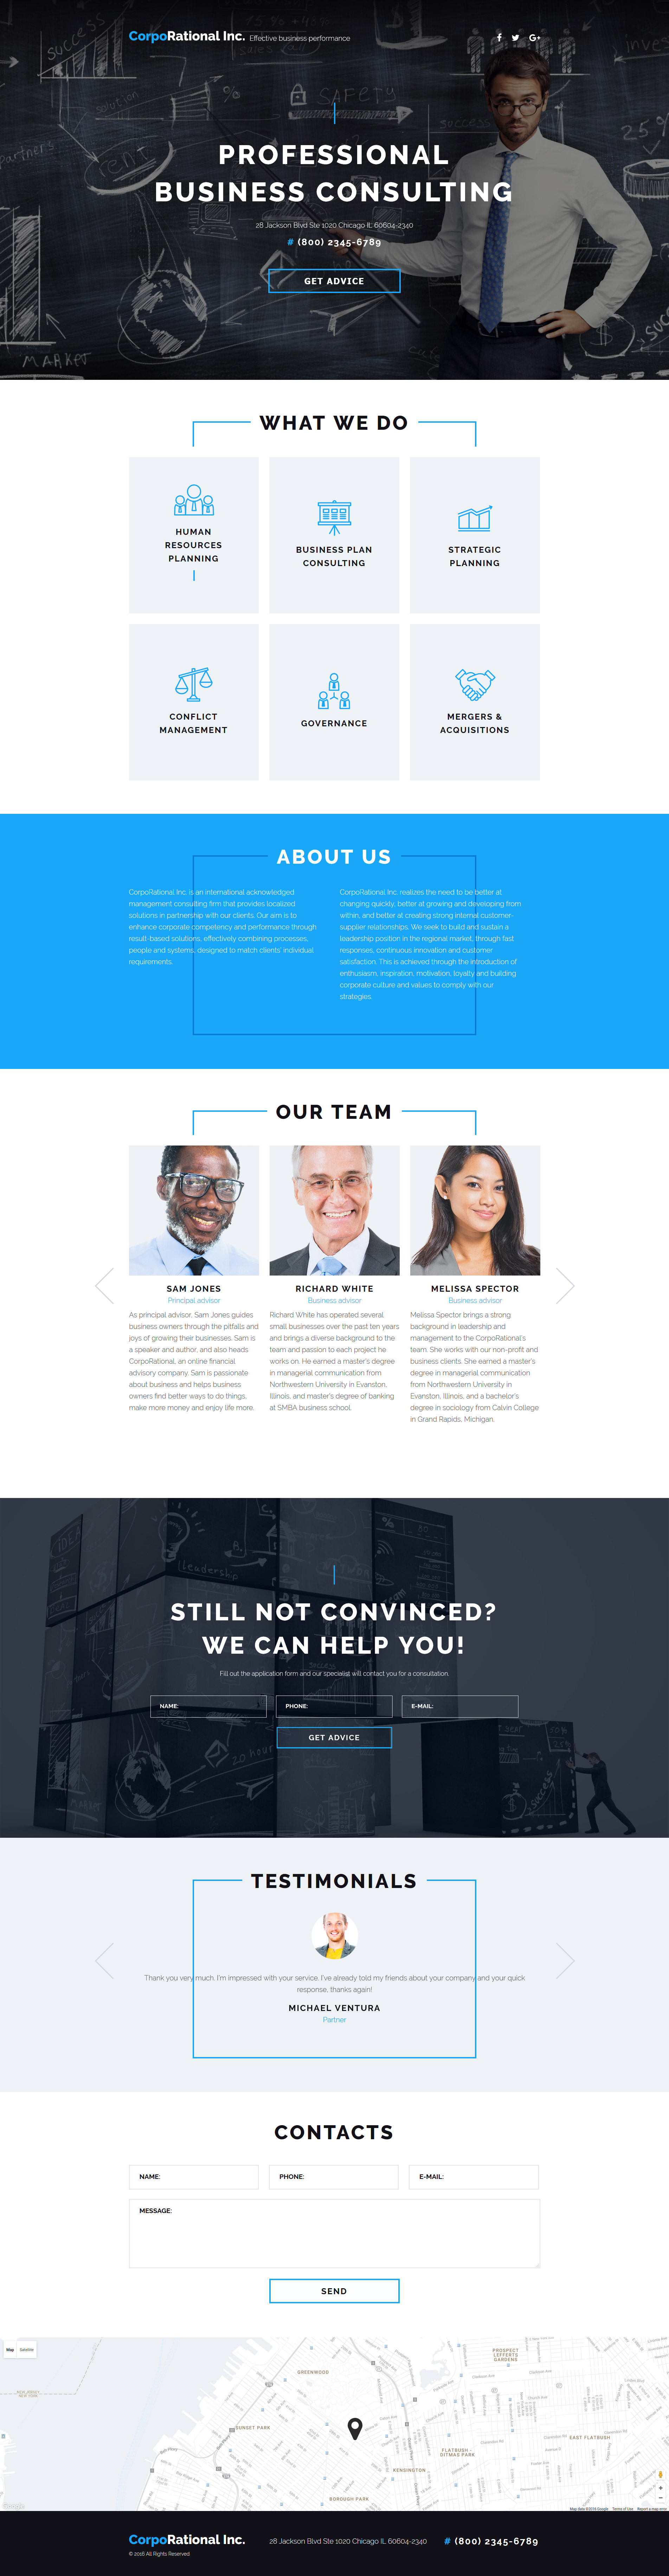 Consulting Landing Page Template - screenshot